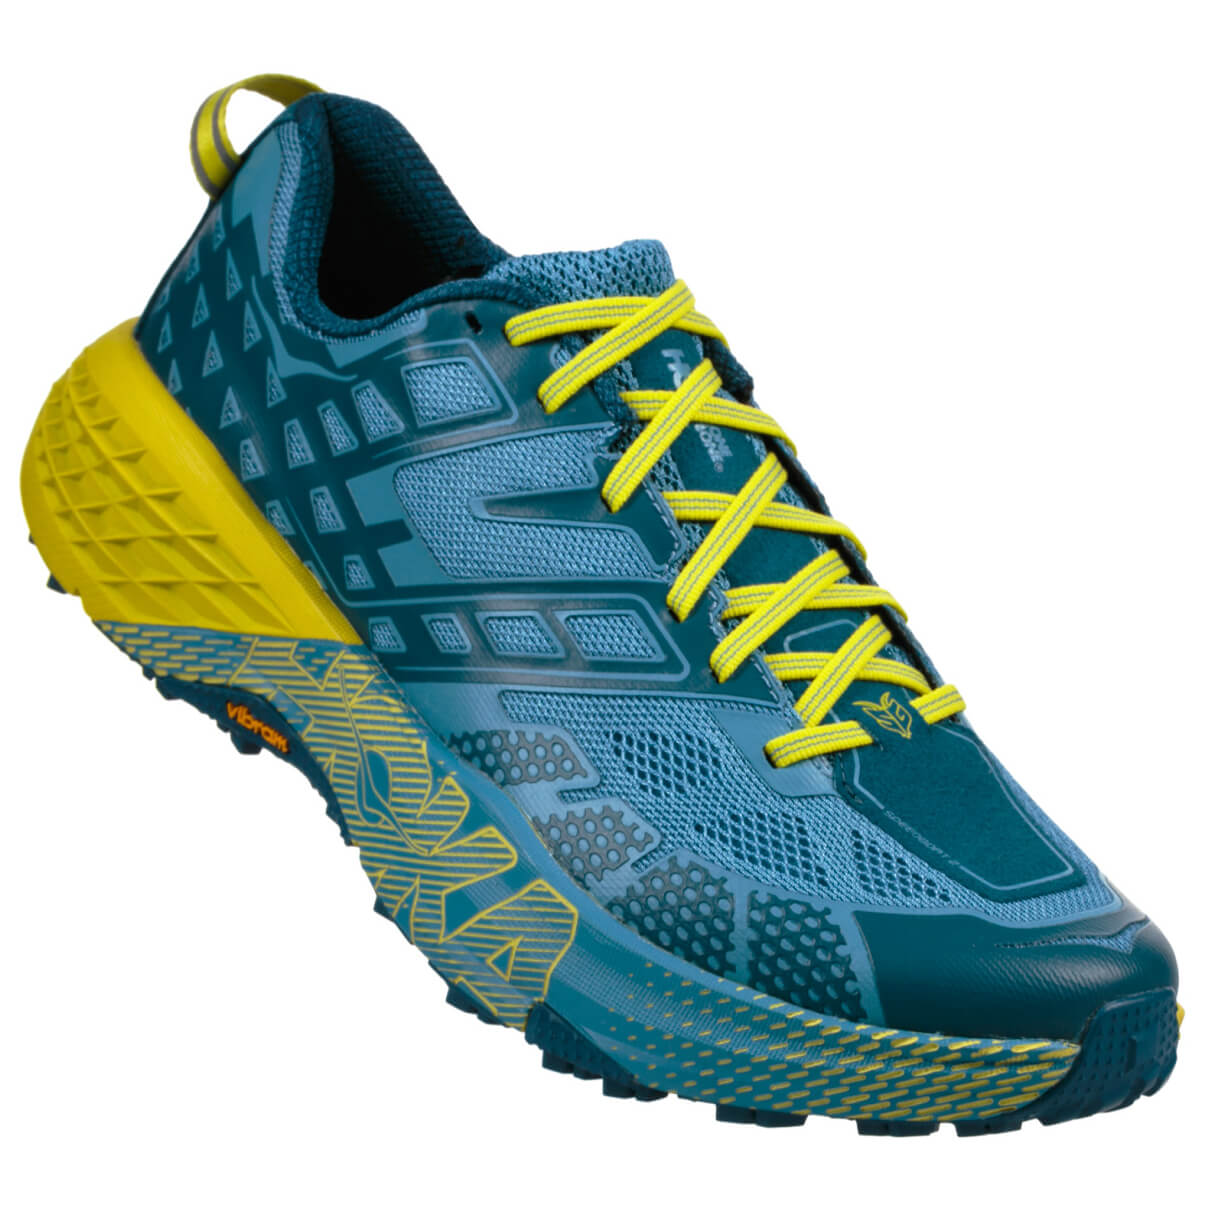 Hoka One One - Speedgoat 2 - Trailrunningschuhe Midnight / Niagara